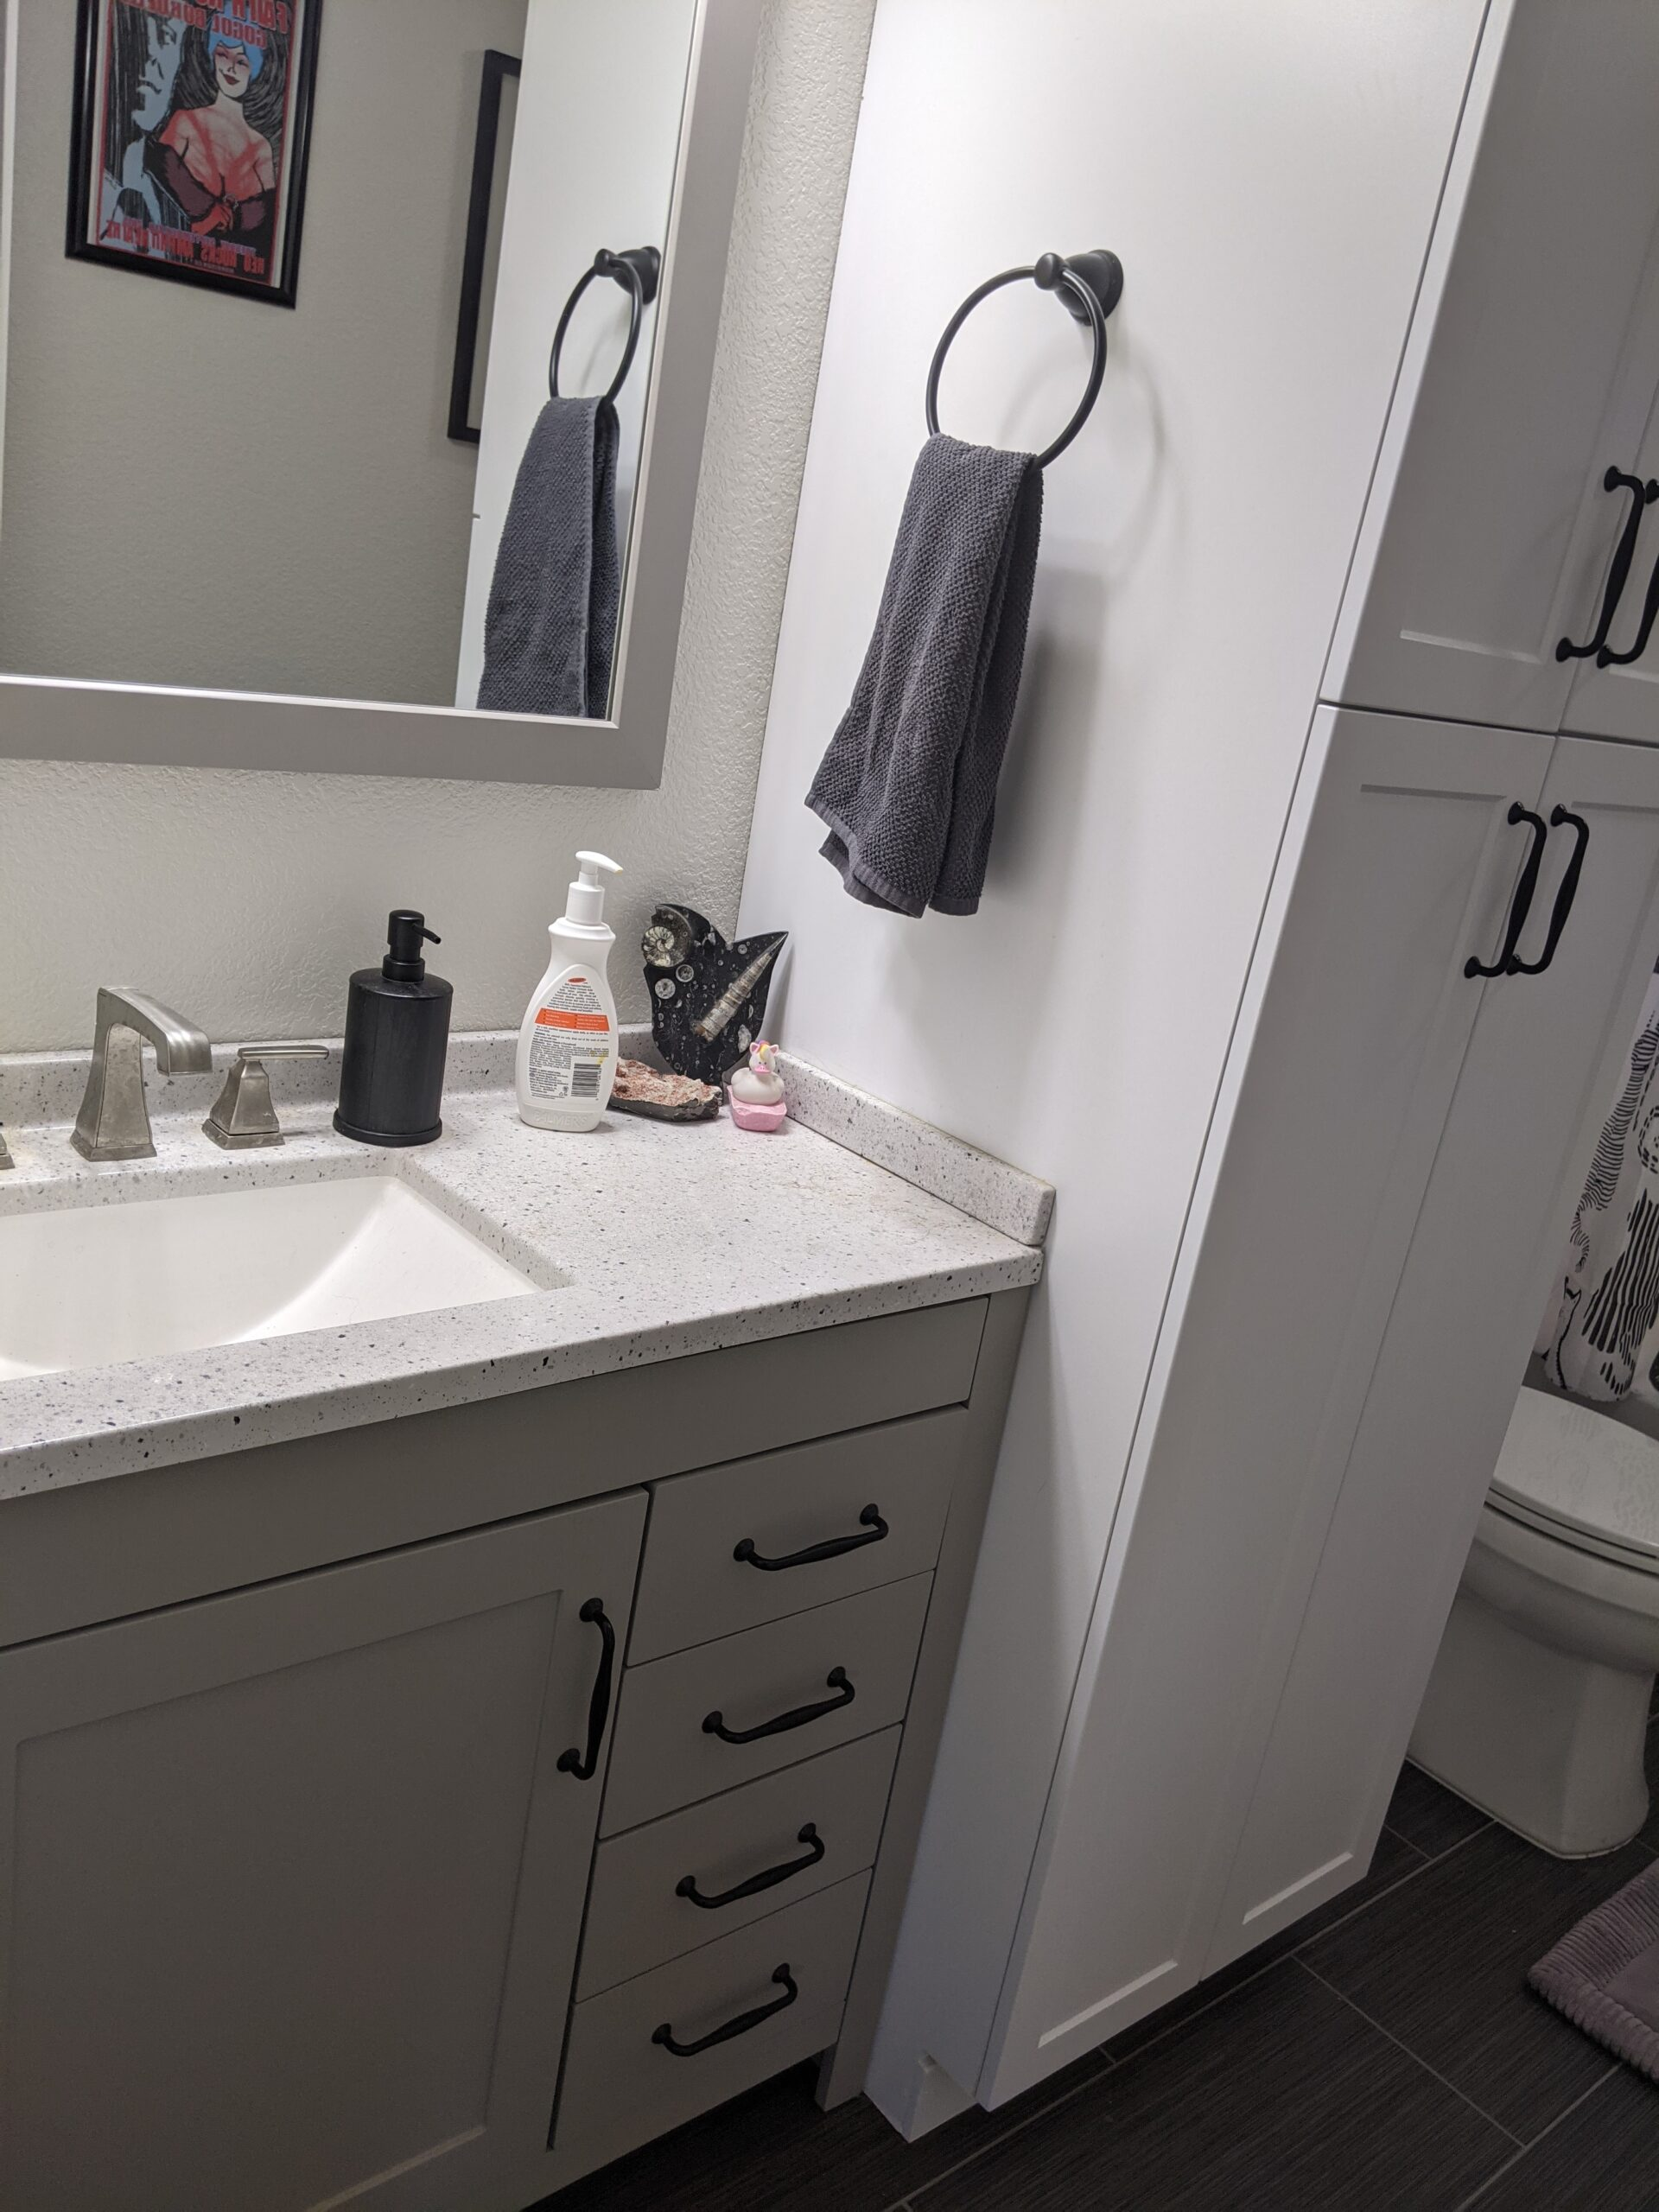 We bought new handles and drawer pulls so the vanity and linen cabinet matched. Don't forget that bathrooms need toilet paper holders and towel rods, too.